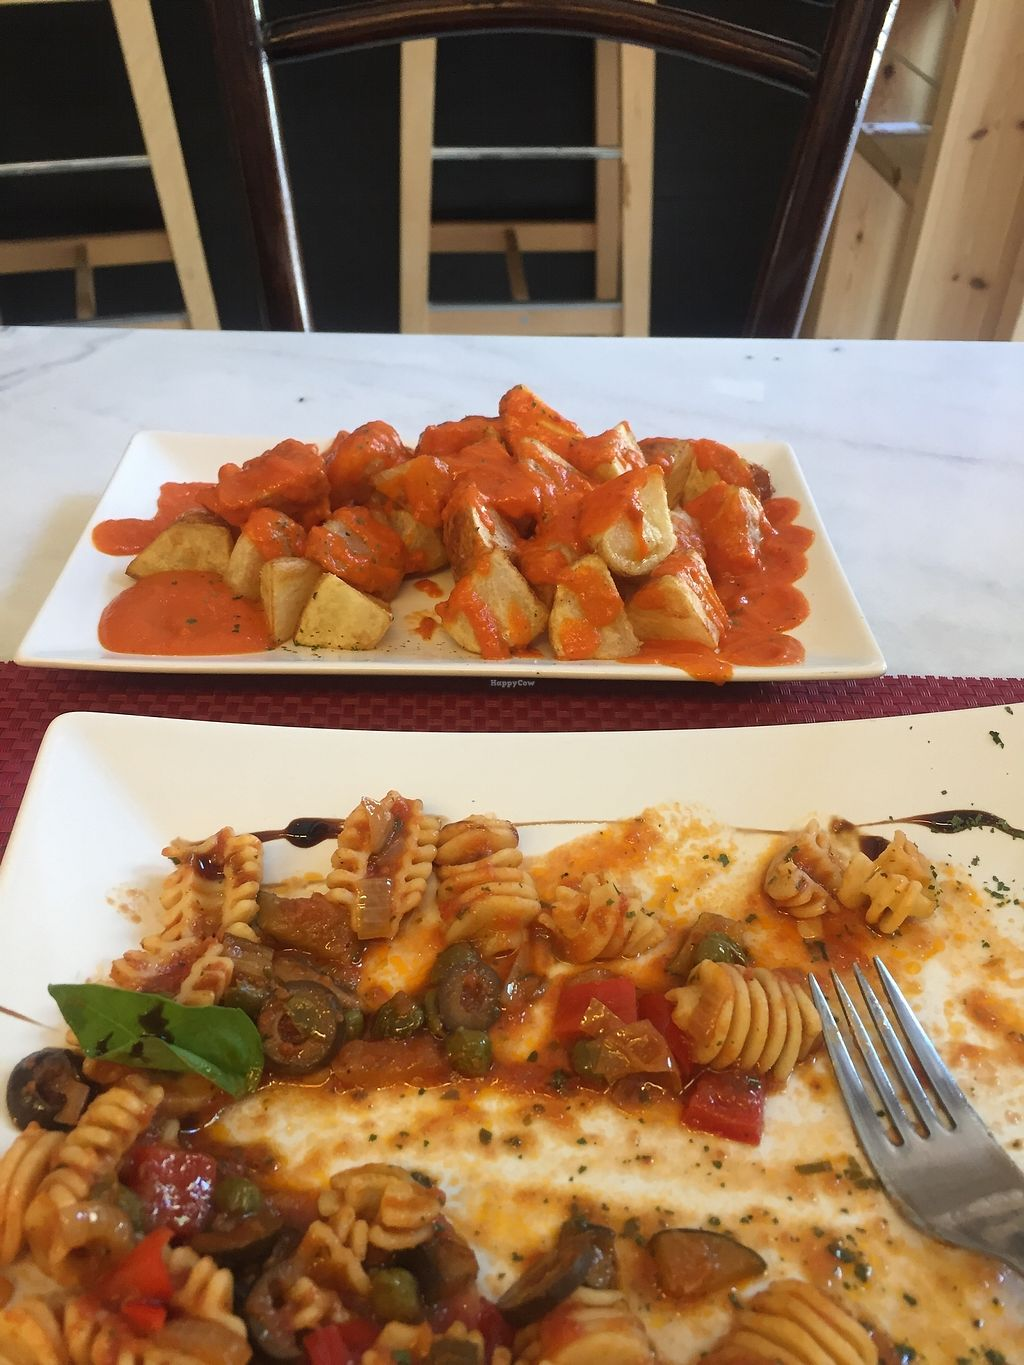 """Photo of La Raposa del Poble Sec  by <a href=""""/members/profile/LornaJane"""">LornaJane</a> <br/>Portions were big. The bravas were lovely  <br/> August 20, 2017  - <a href='/contact/abuse/image/91844/294637'>Report</a>"""